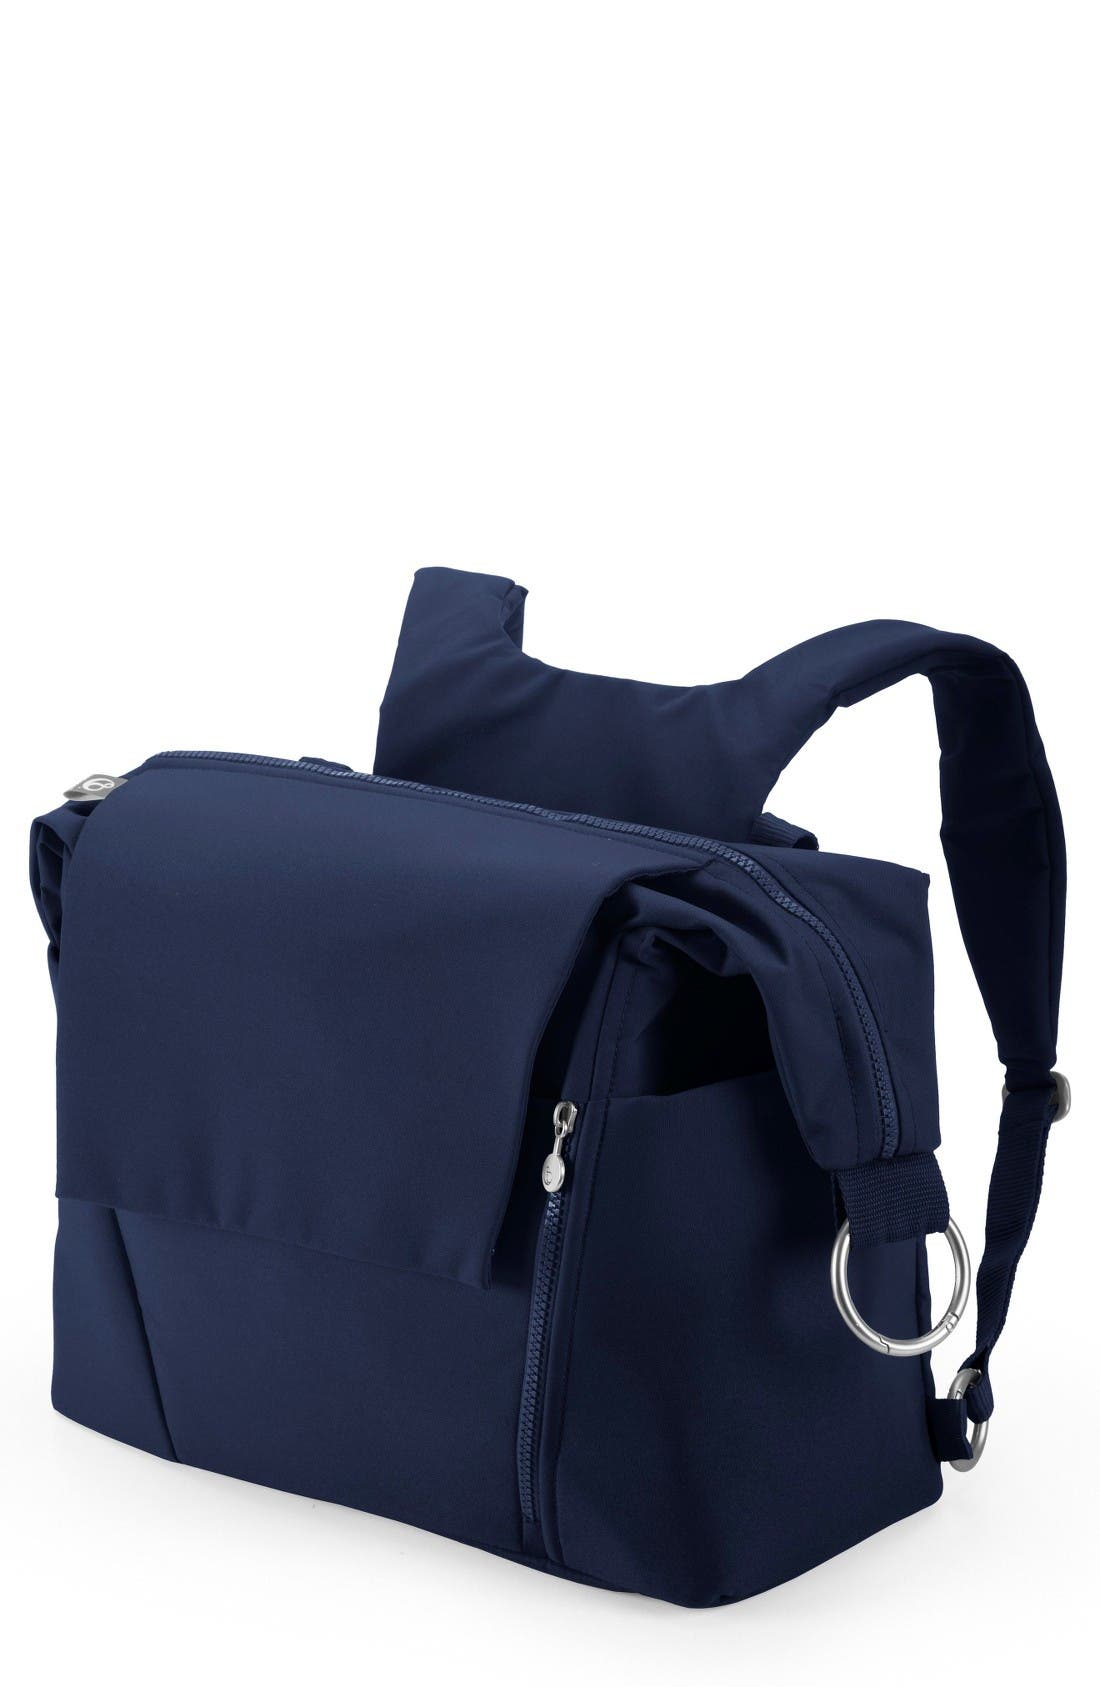 Stokke Baby 'Xplory®' Changing Bag